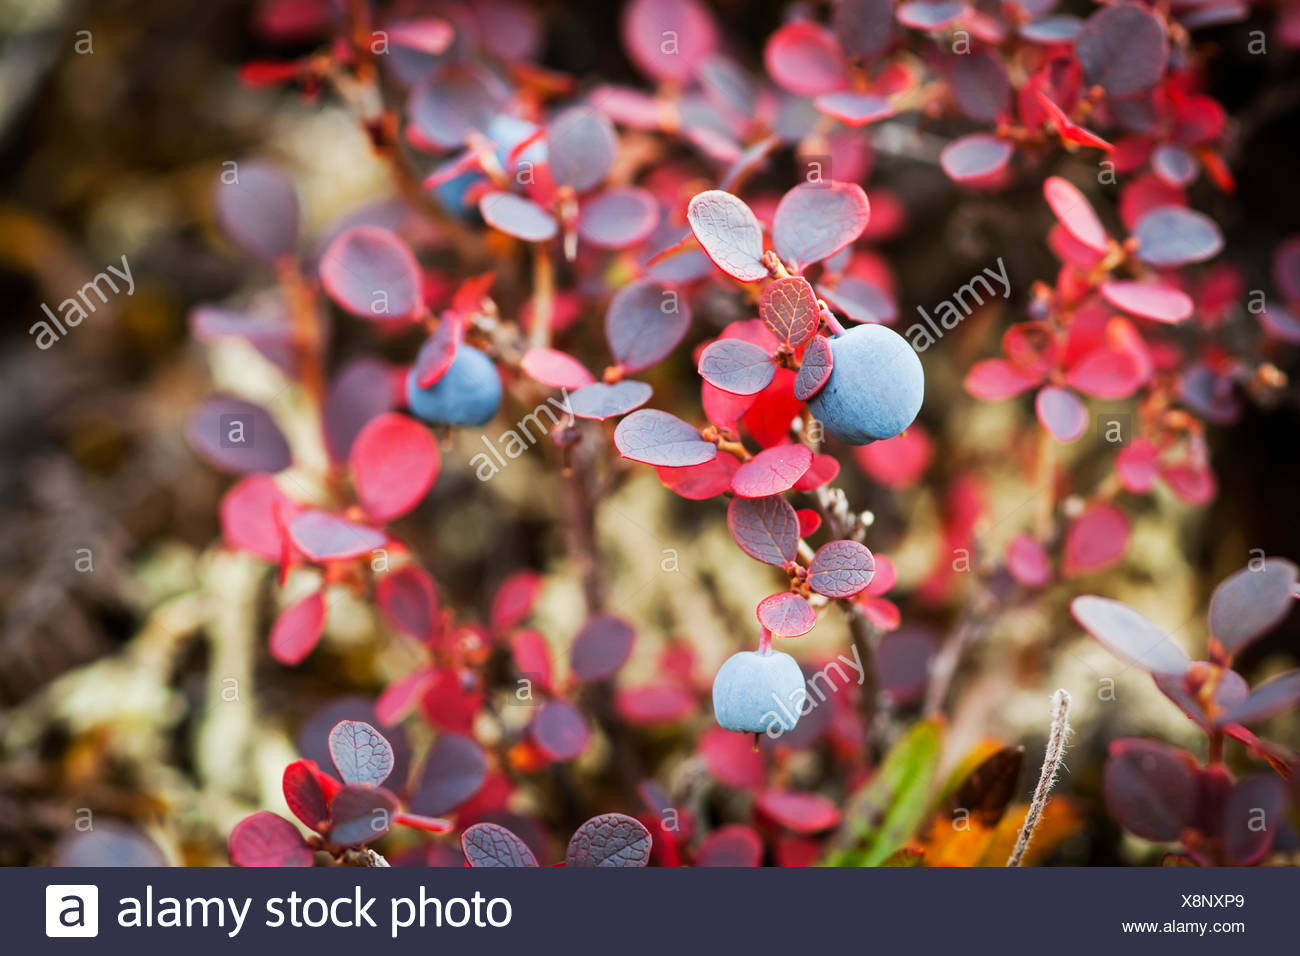 Lowbush Blueberry In Autumn Colors Near The Noatak River; Brooks Range, Alaska, United States Of America - Stock Image